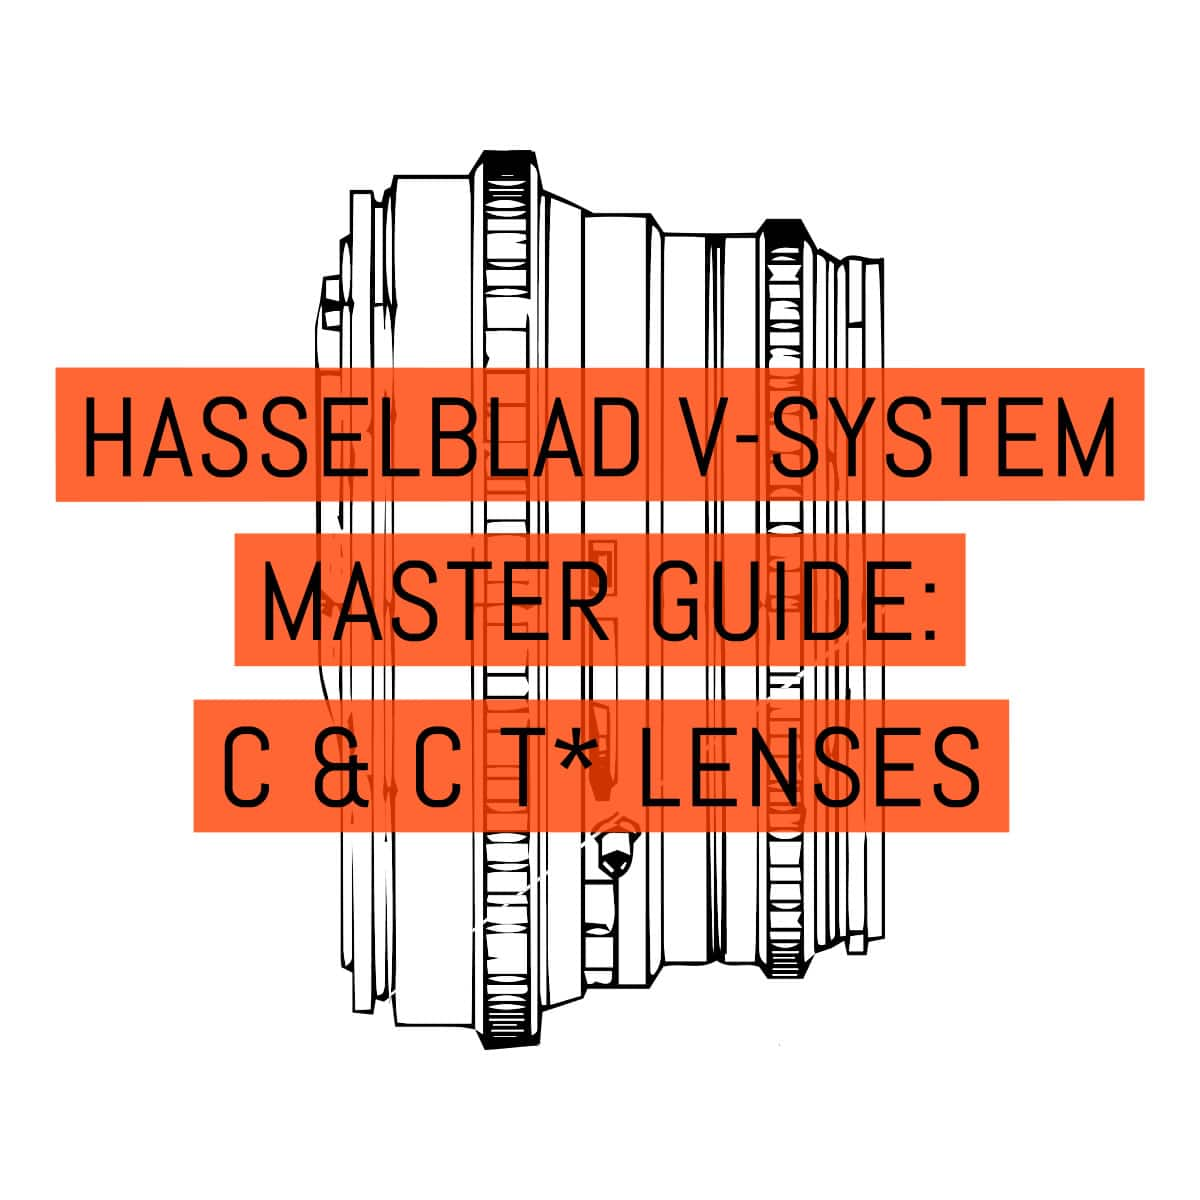 The Hasselblad V-System master guide: C and C T* lenses